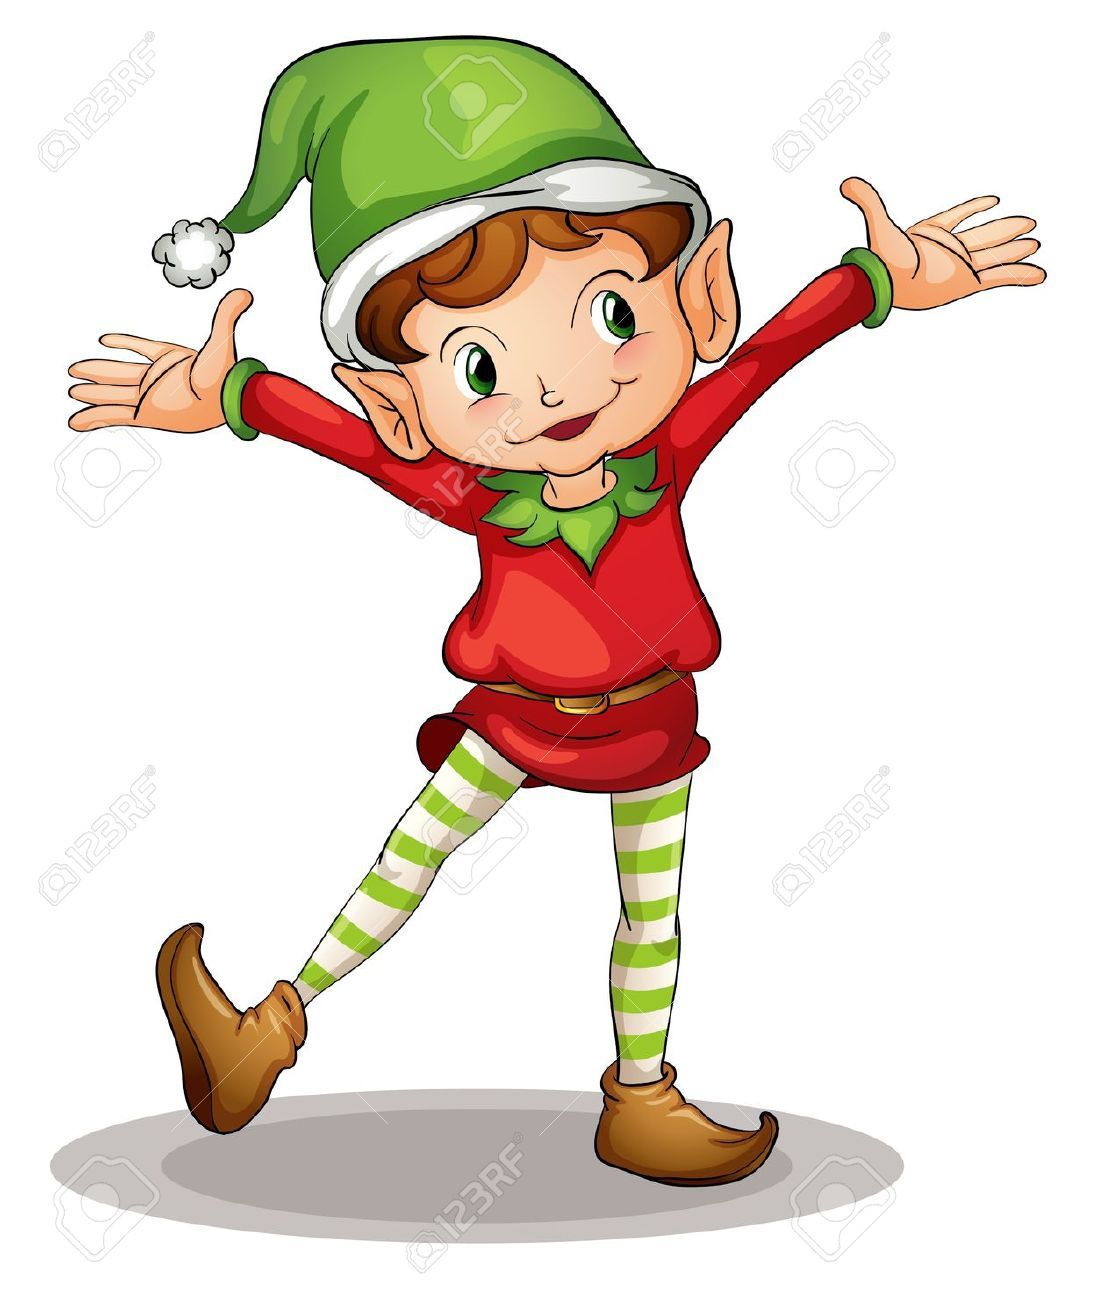 Illustration of a christmas elf | Christmas elves | Pinterest ...